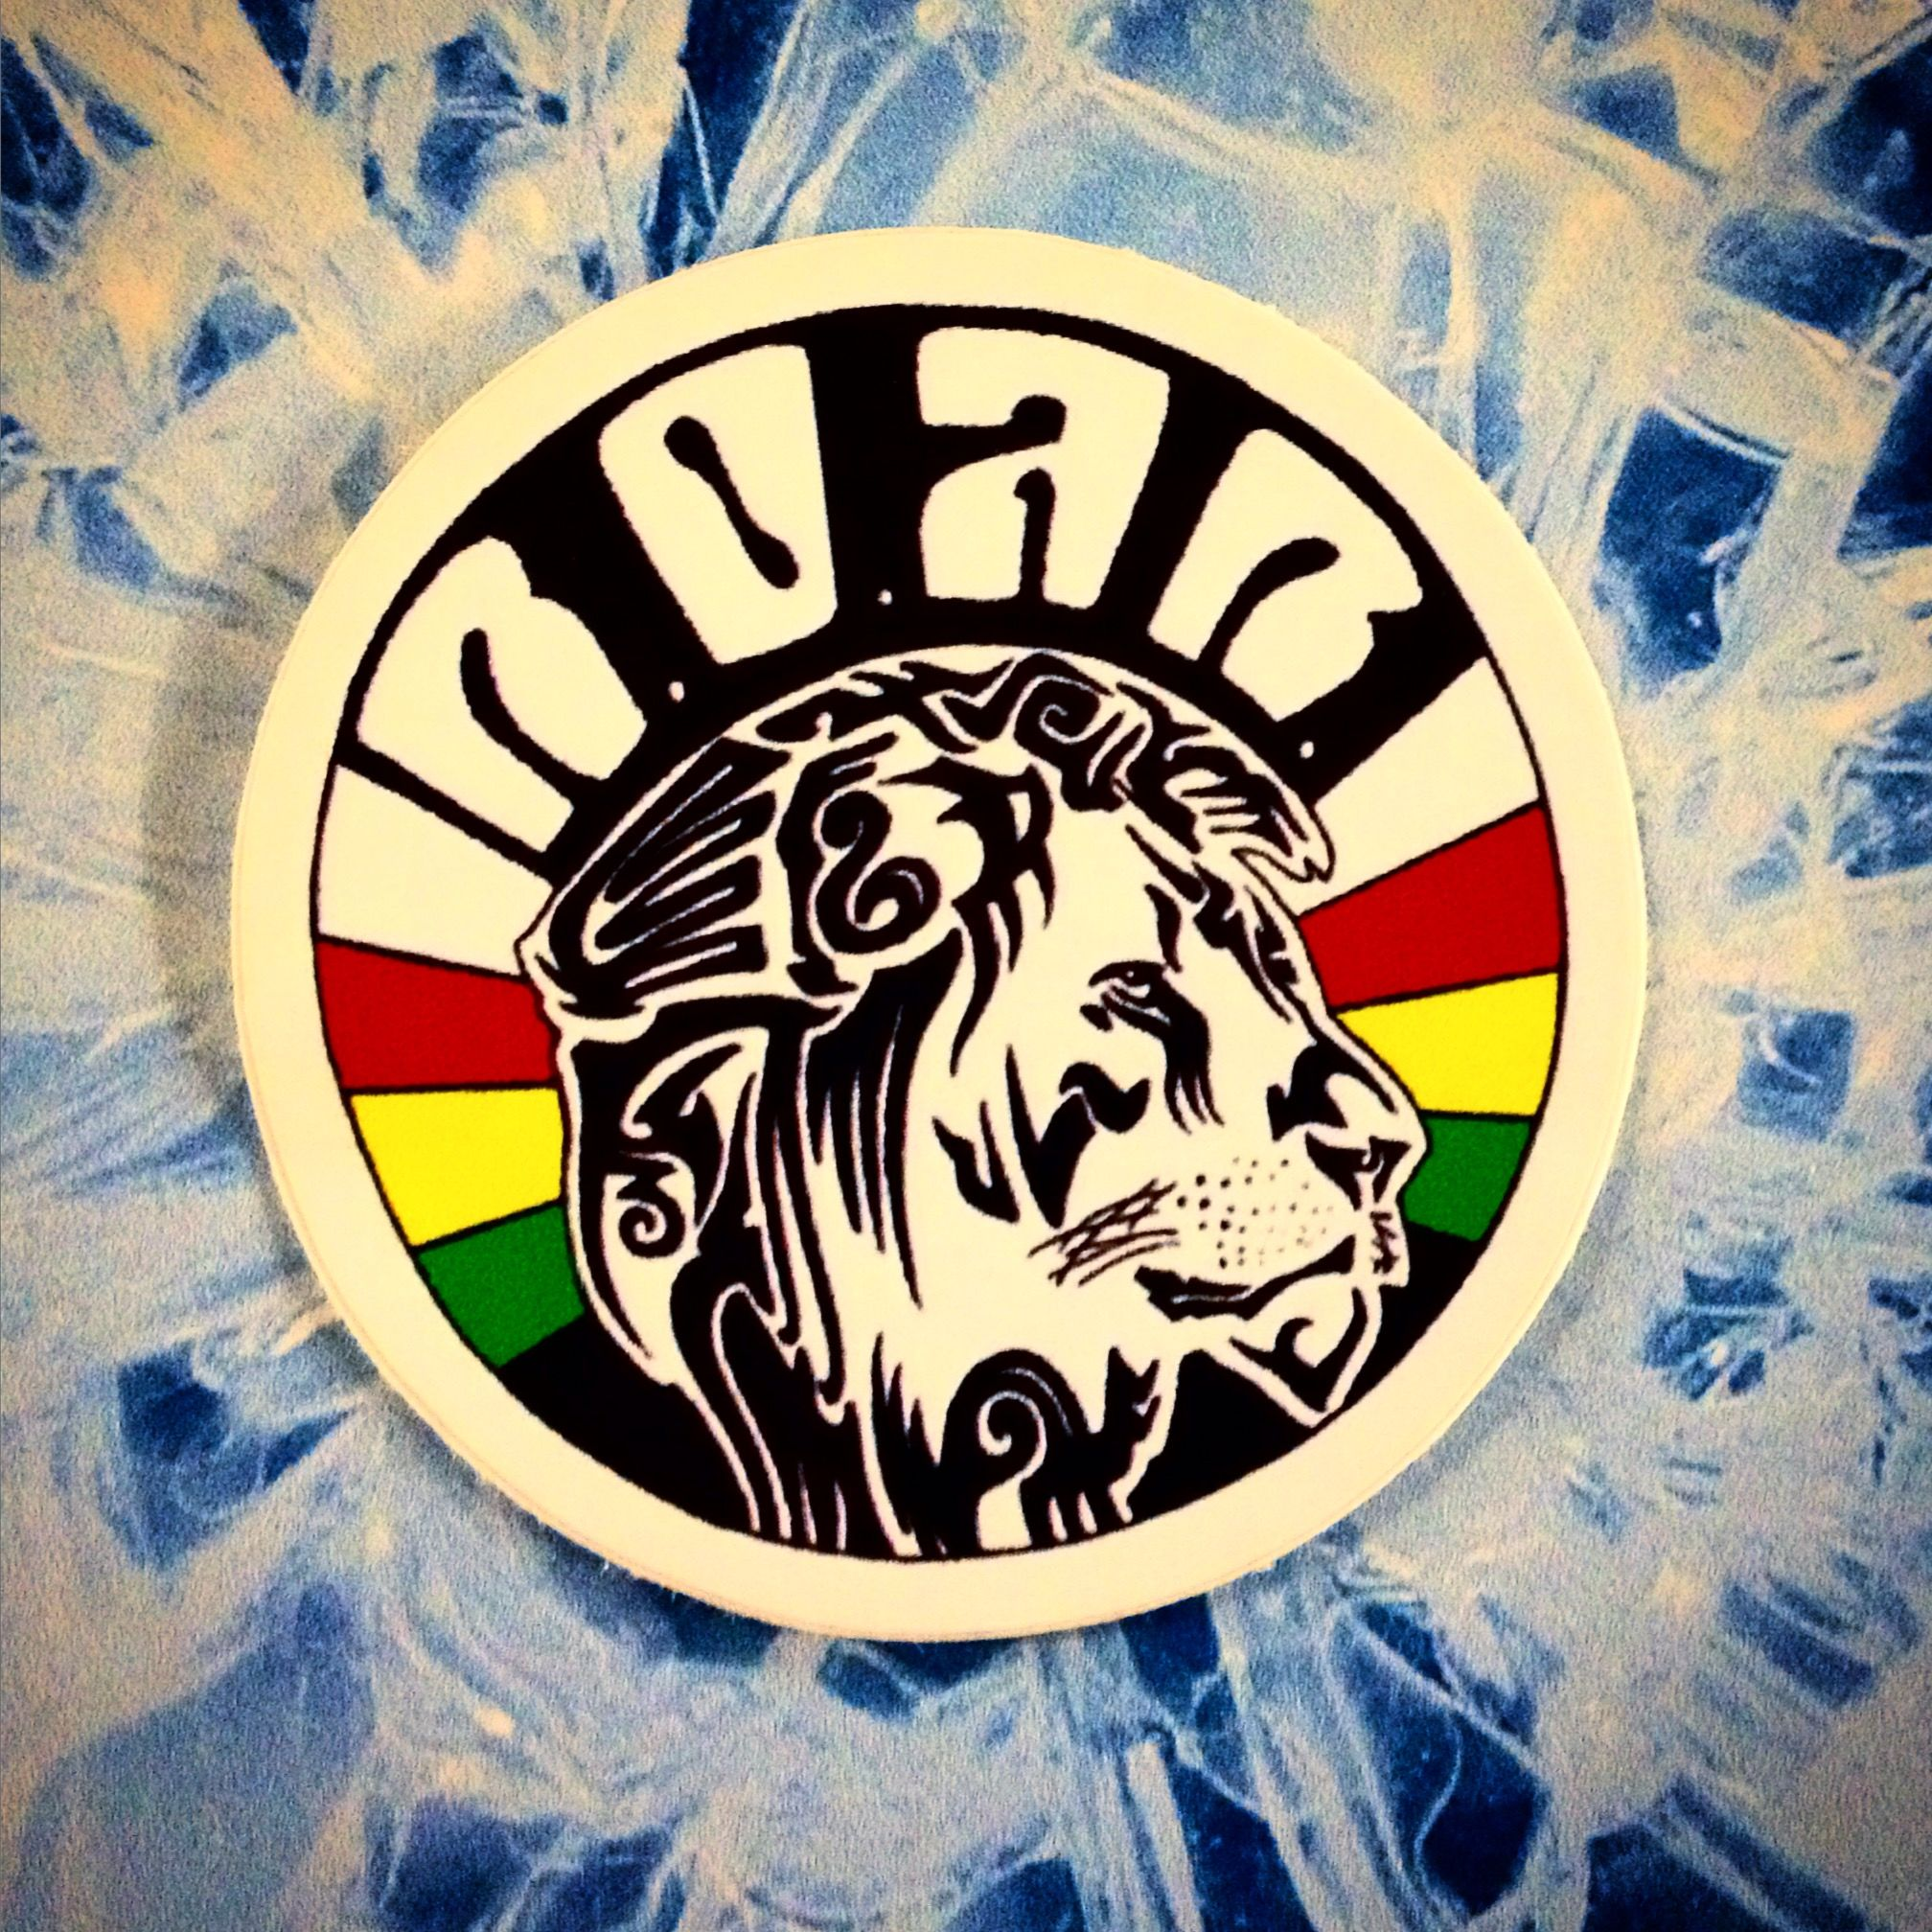 Roar rasta lion stickers bumper stickers die cut stickers and decals printed on outdoor vinyl full color any shape no set up fees